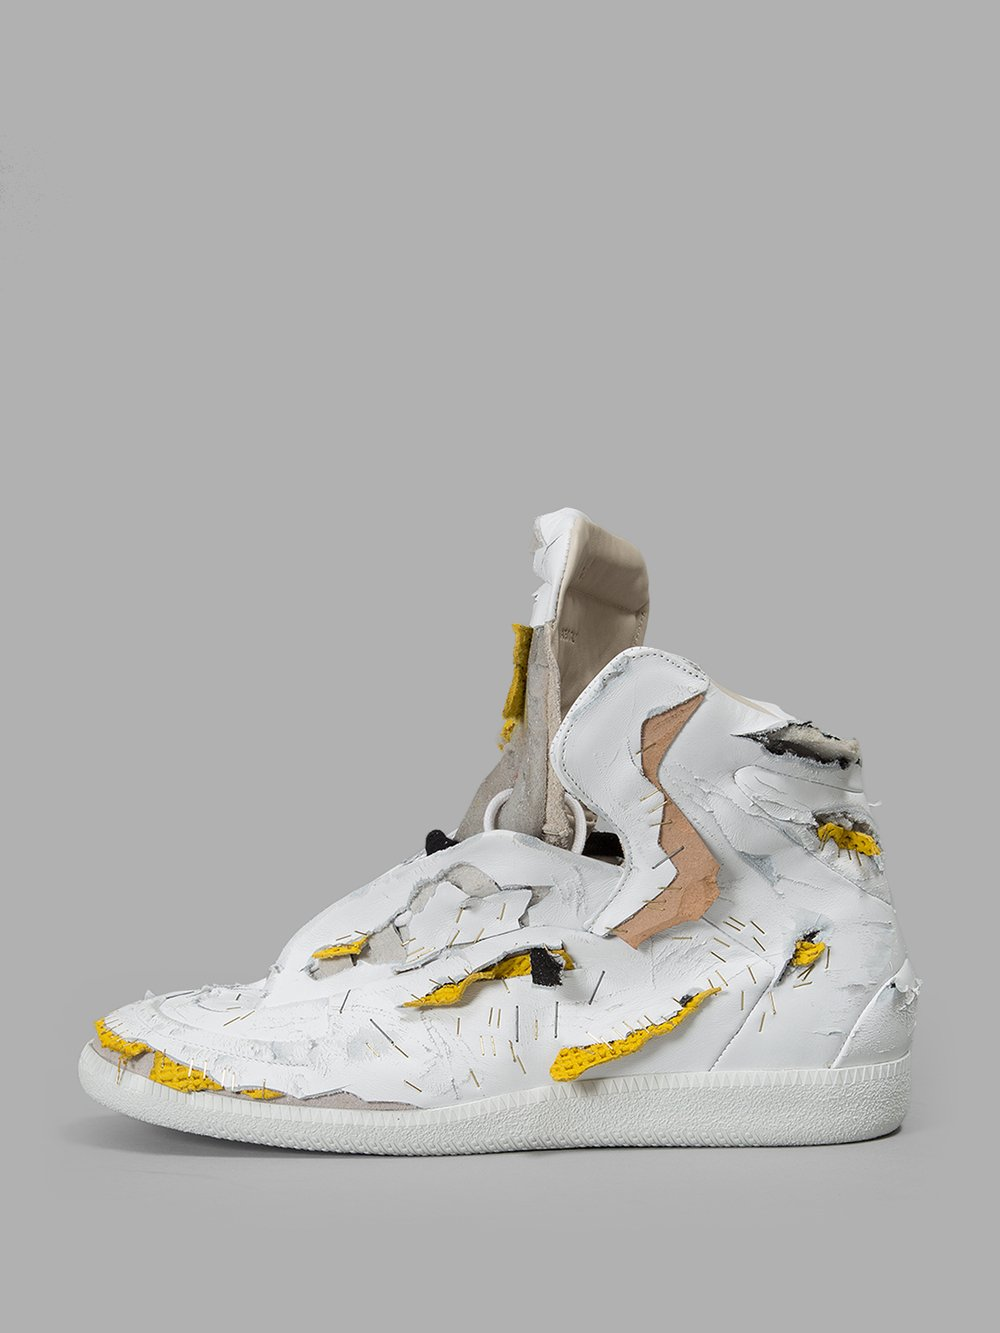 Classic Online Sale Online Maison Margiela Sneakers Sneakernews Cheap Price From China Cheap Price Cheap Sale Footlocker Pictures hnTB1Jy4QS